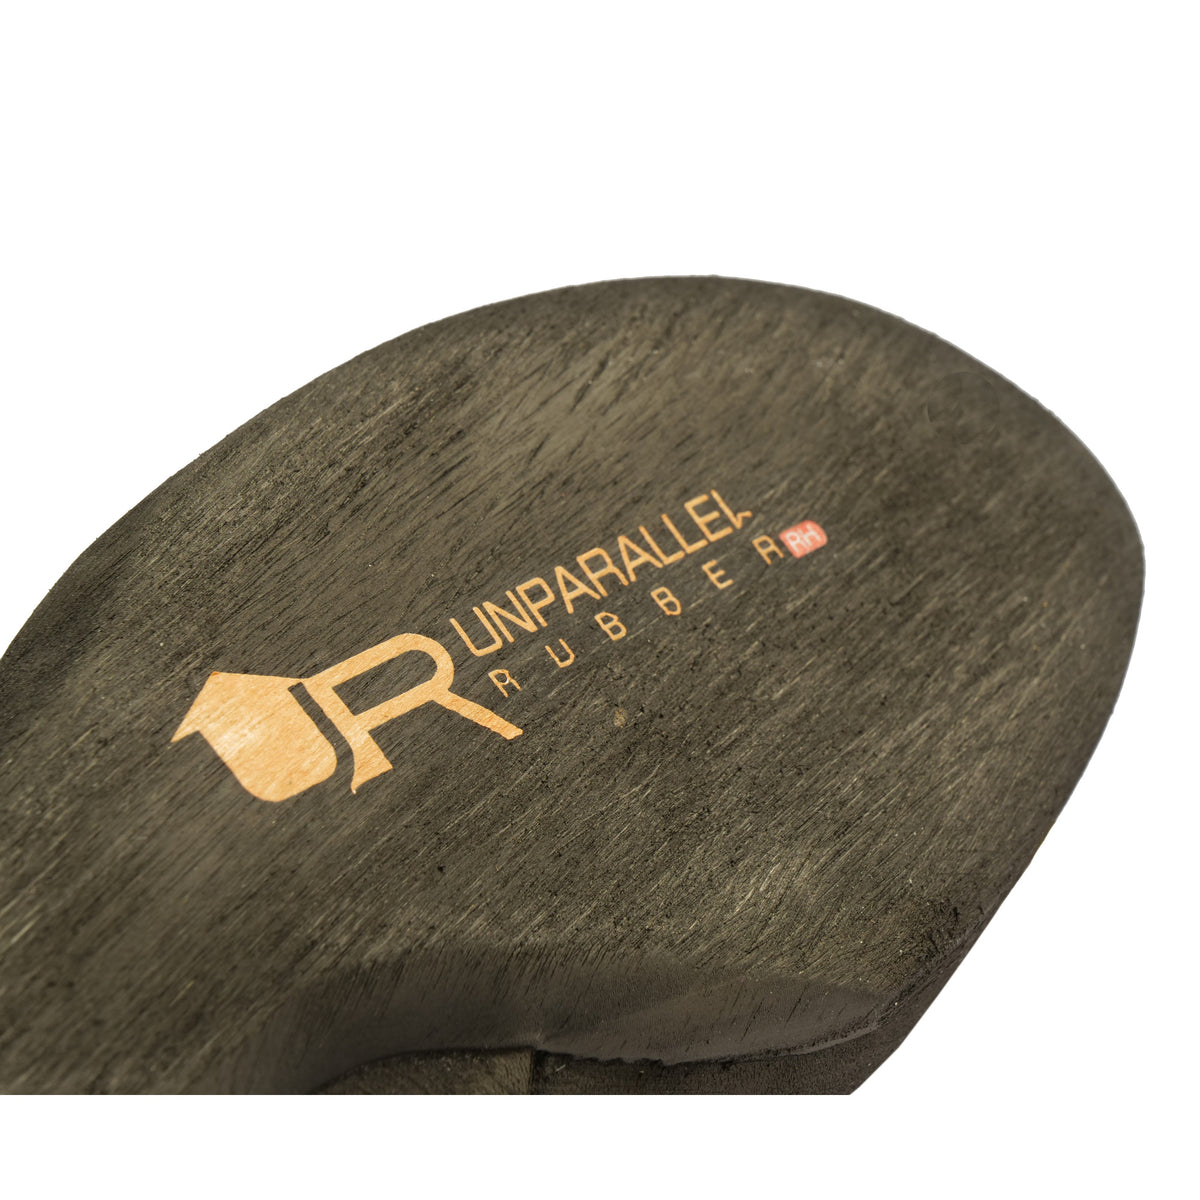 Unparallel RH Rubber sole in black with orange logo